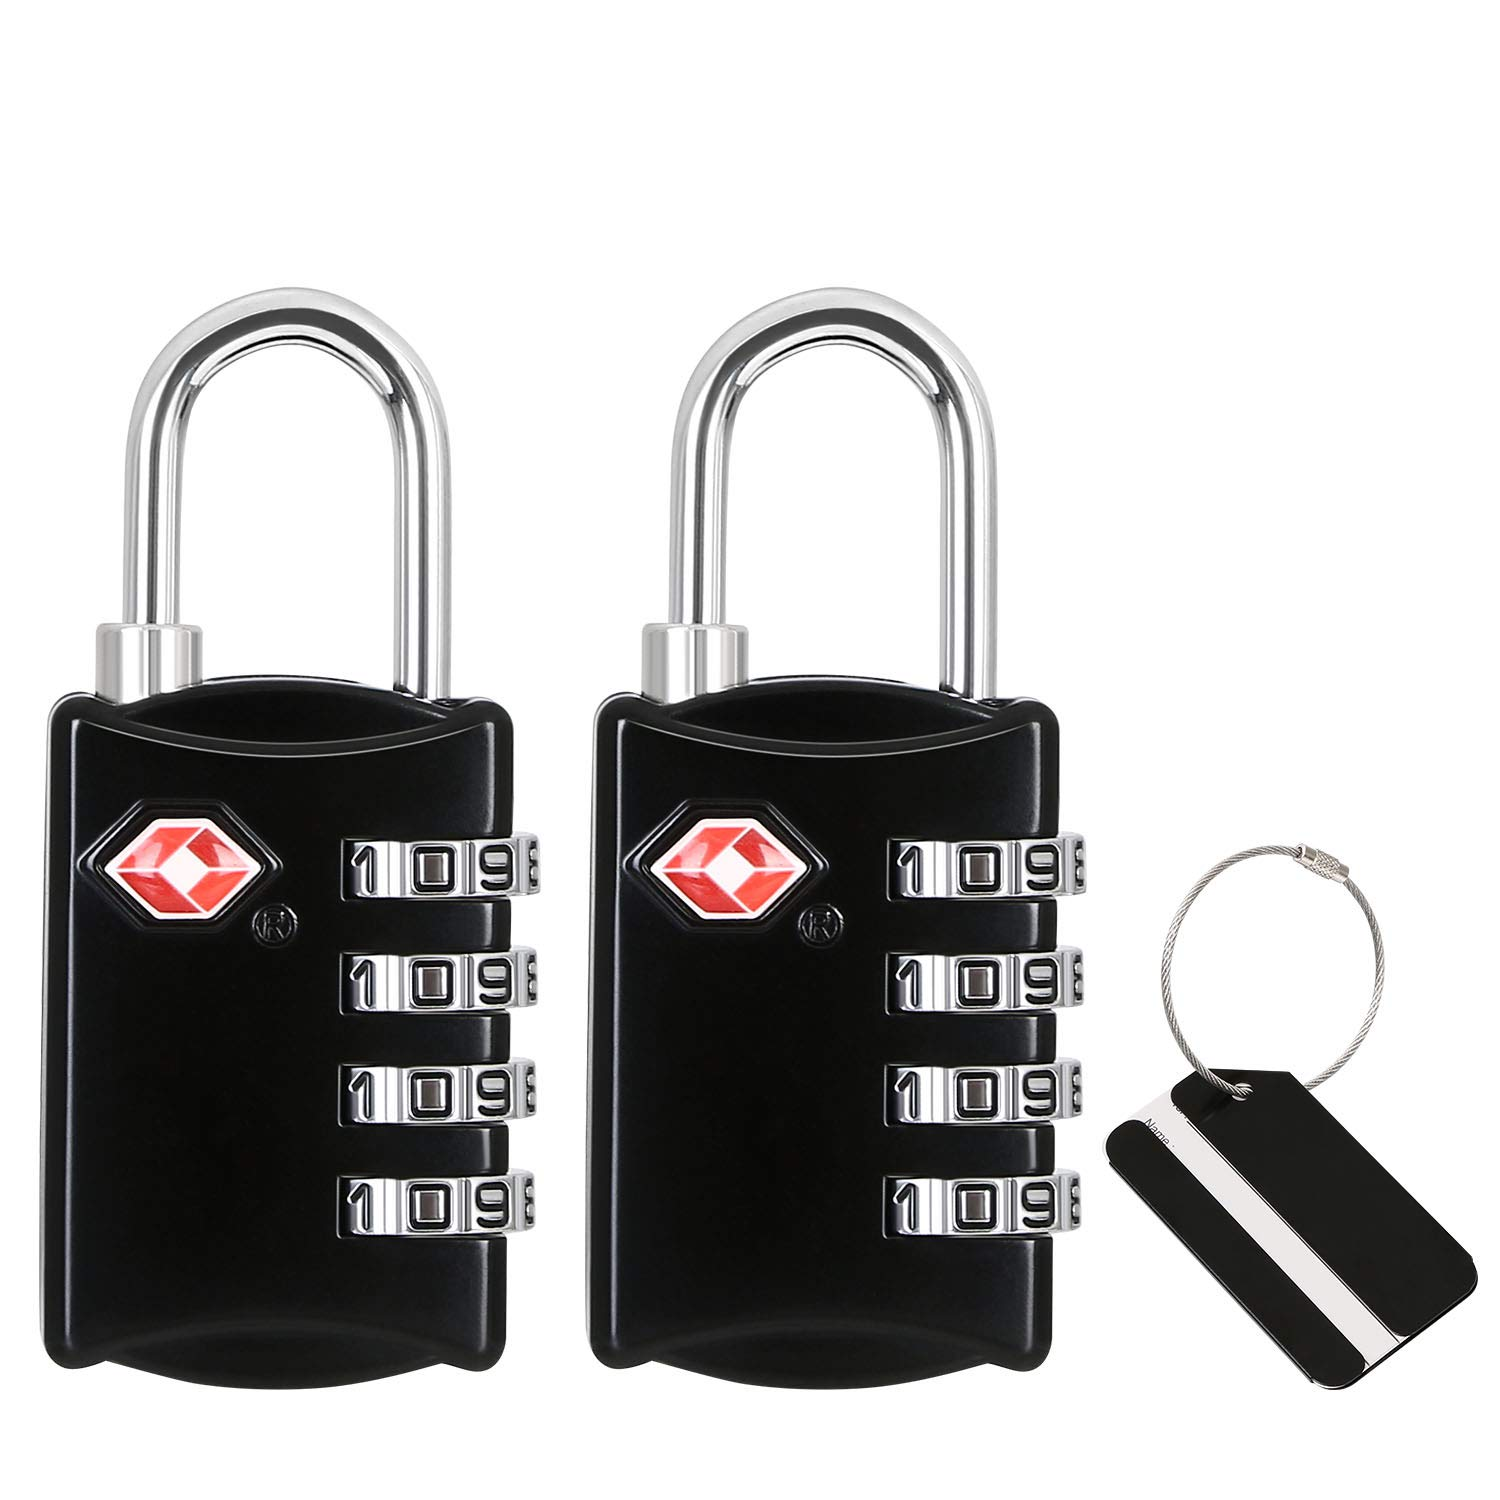 Outdoor Shed Lockers Gym 2PCS TSA Lock with Boarding Pass 4-Dial Security Padlock Combination Code Lock for Suitcases Bags flintronic® Travel Luggage Locks School